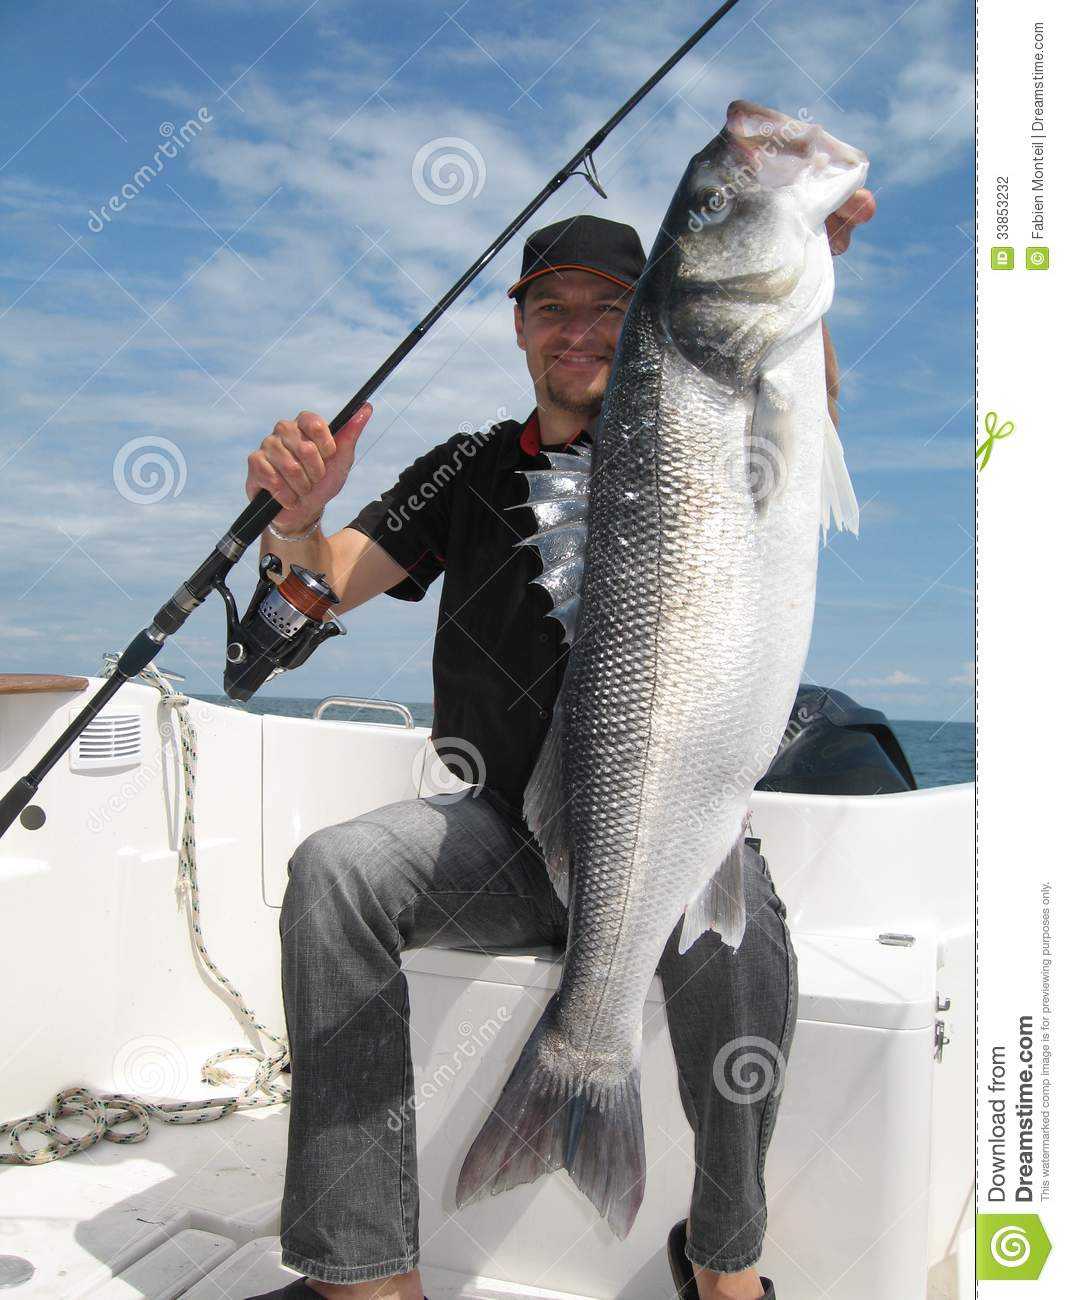 Sea bass stock photography image 33853232 for People catching fish